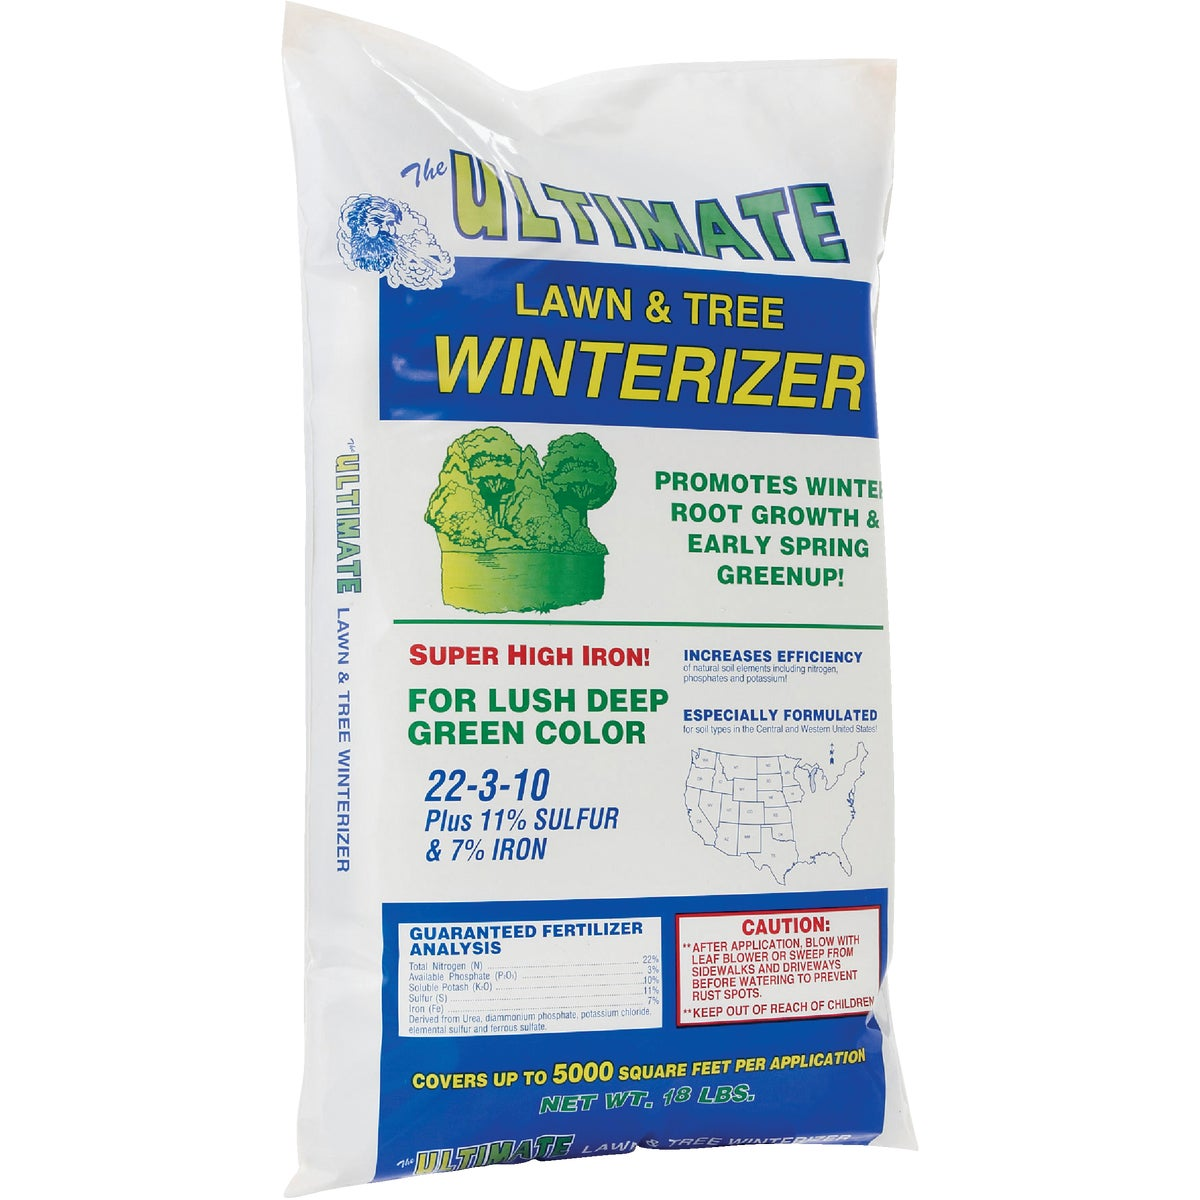 LAWN/TREE WINTRIZER FERT - 141 by Ultimate Fertilizer